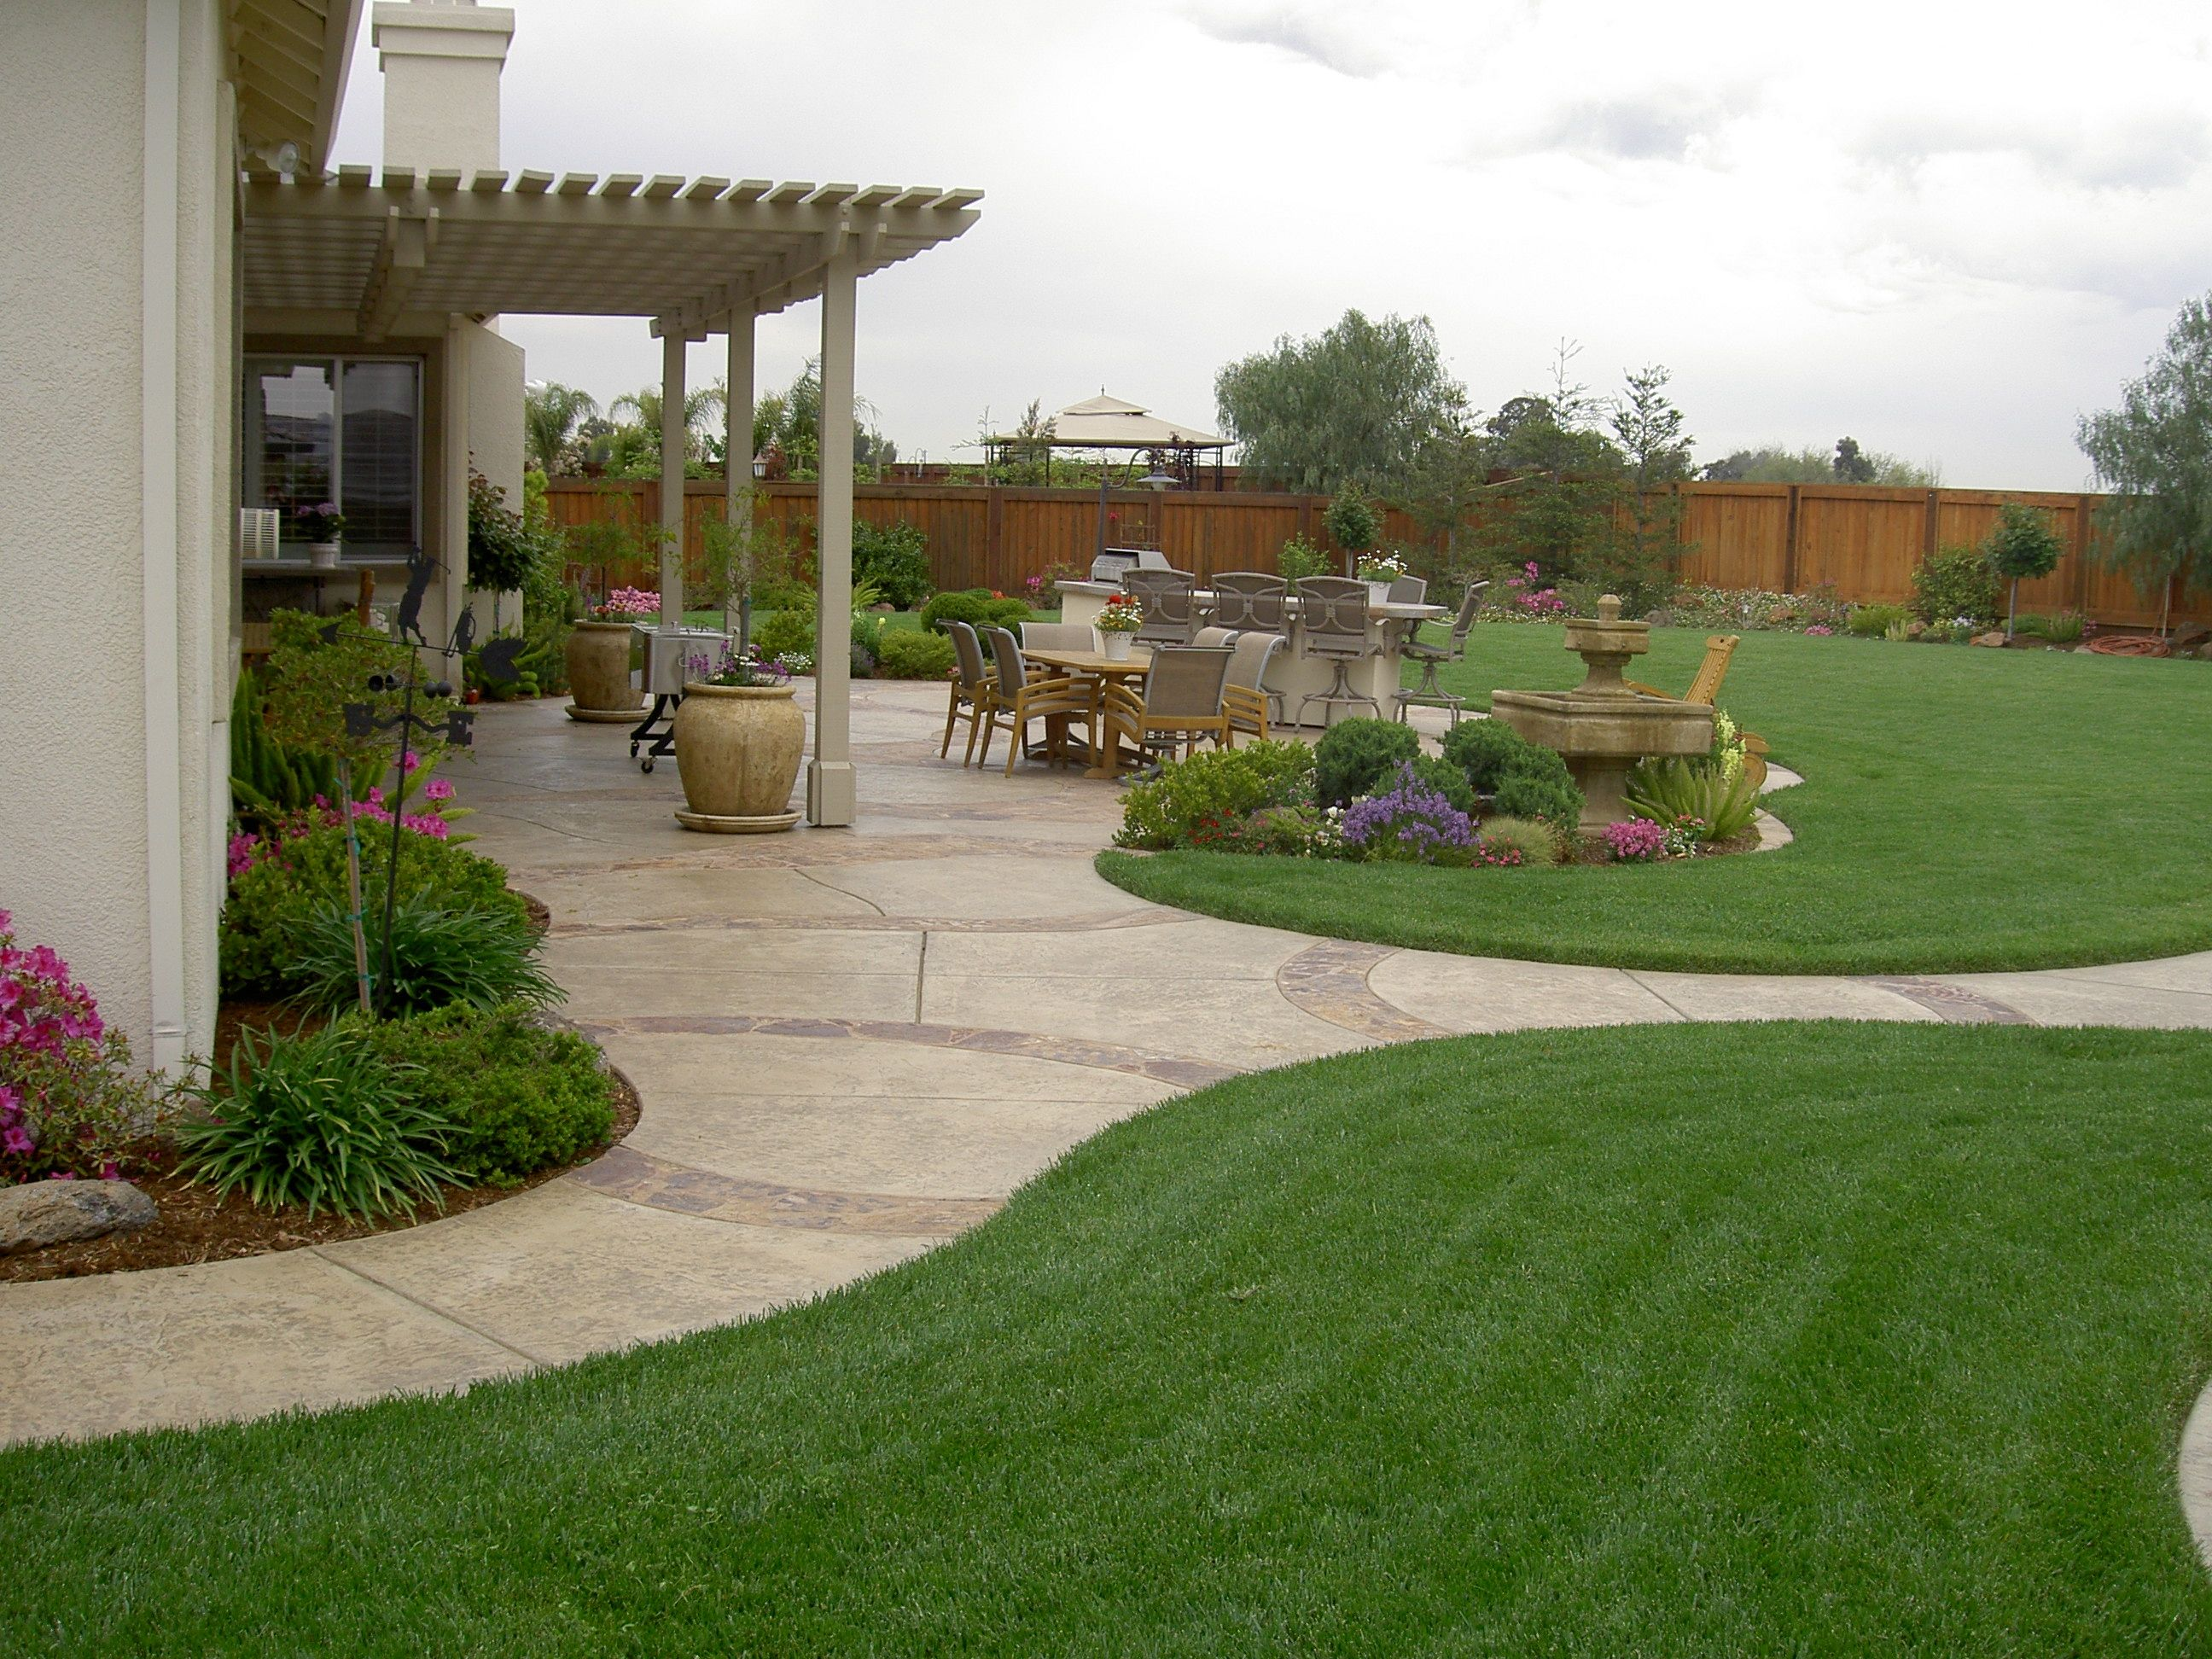 Backyard Landscape Design Ideas cheaplandscapingideasforbackyard gravel backyard landscaping ideas Backyard Design Narrow Backyard Design Ideas Narrow Backyard Design Ideas Small Backyard Landscaping Ideas 2 Concept